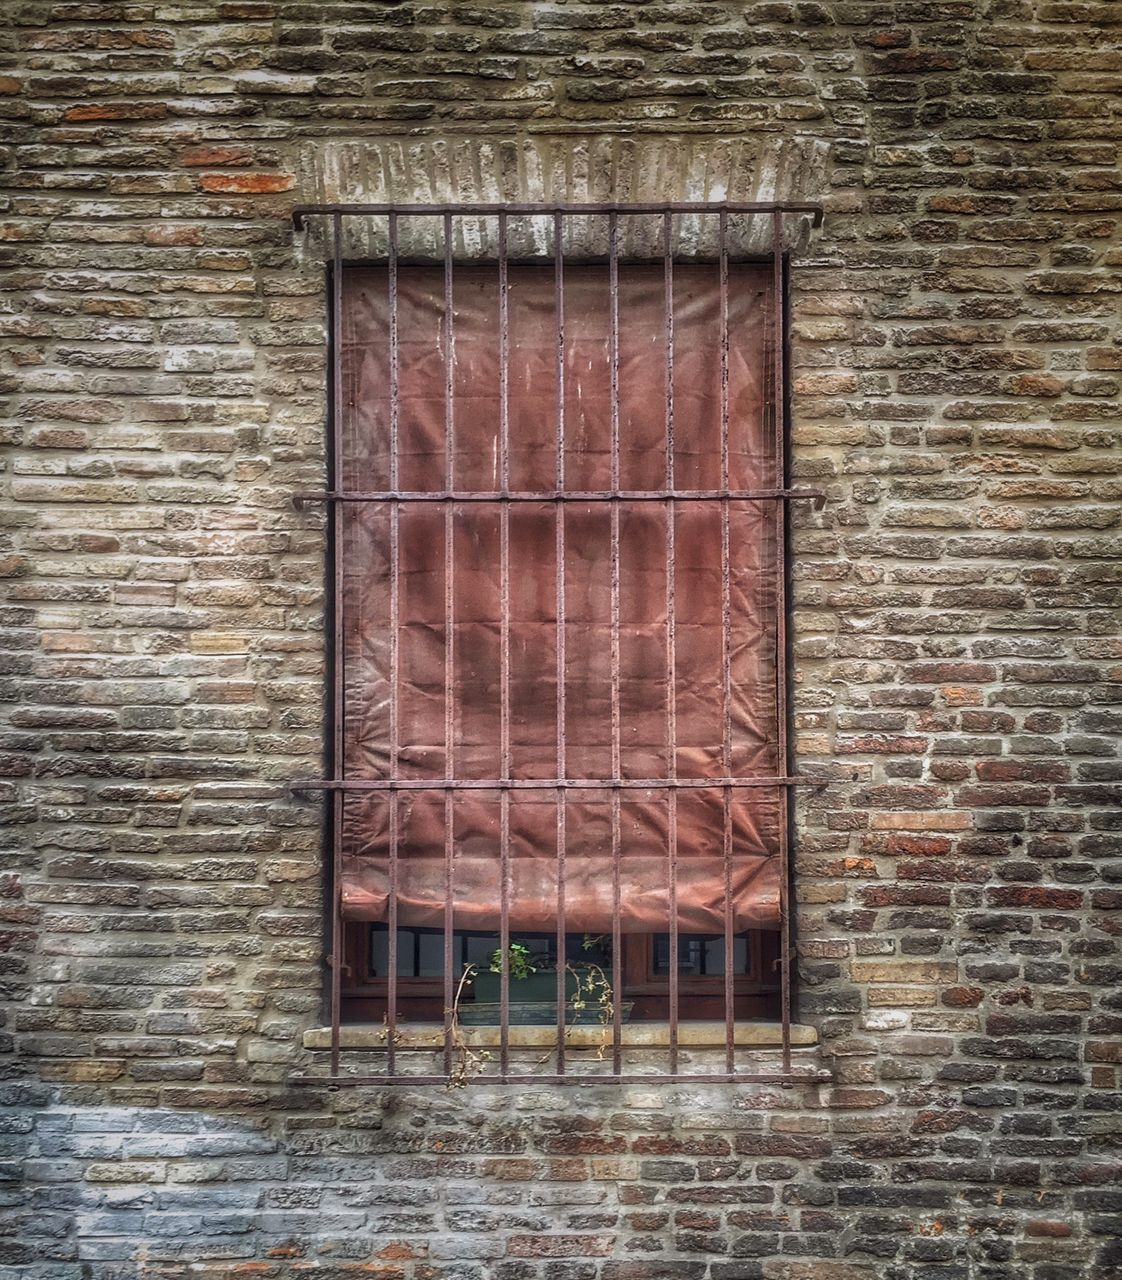 brick wall, architecture, no people, built structure, window, day, building exterior, outdoors, close-up